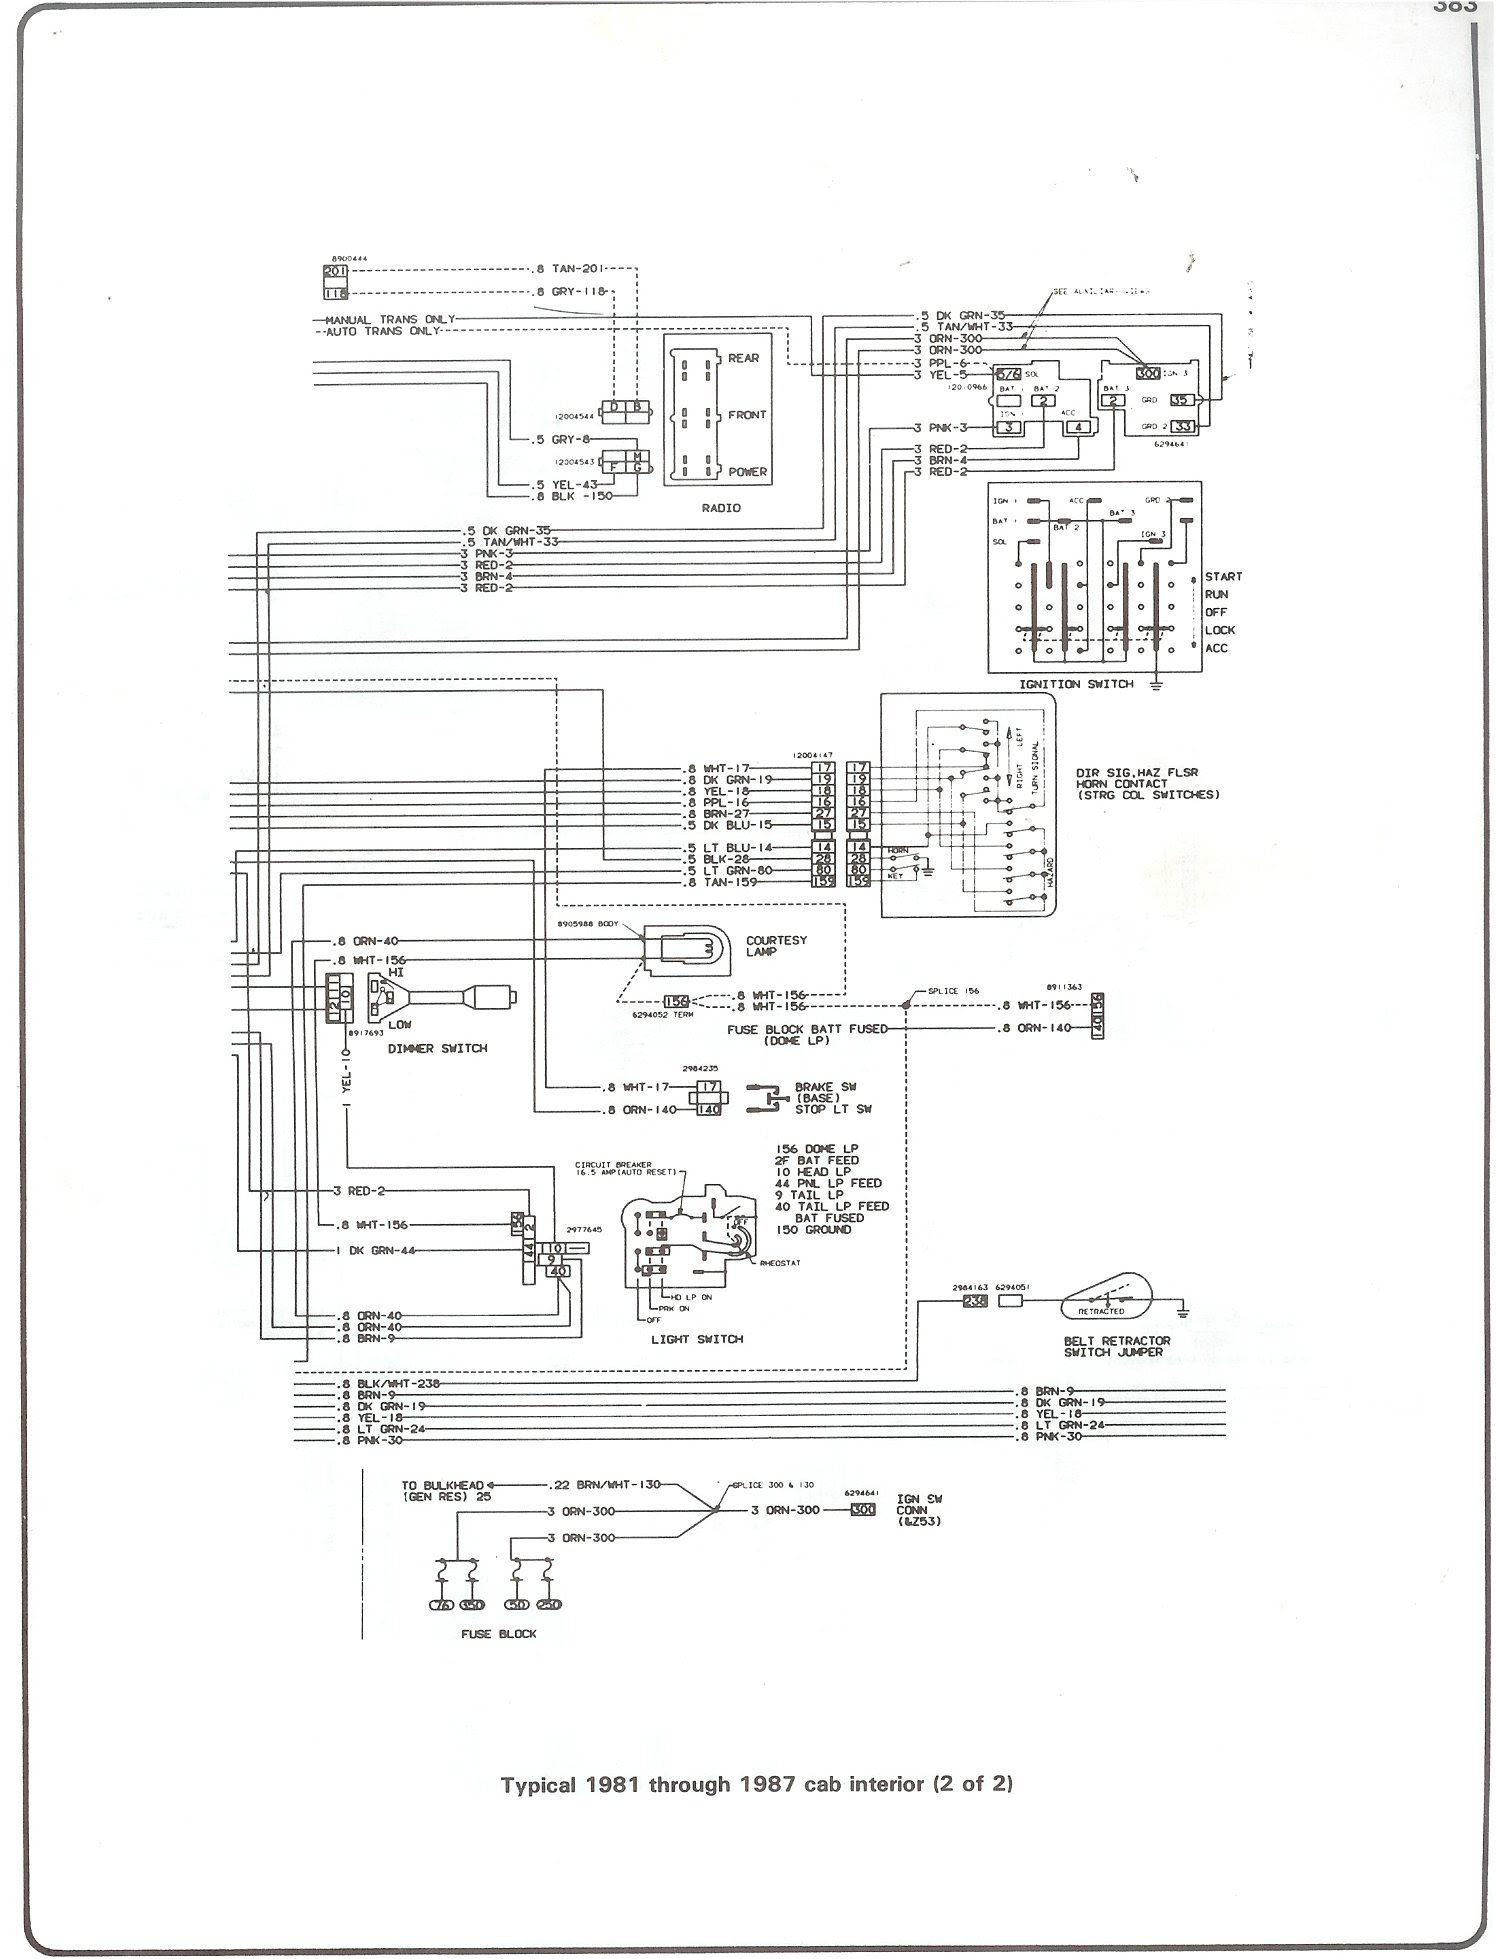 Diagram 1977 C10 Alternator Wiring Diagram Full Version Hd Quality Wiring Diagram Healthydiagrams Media90 It